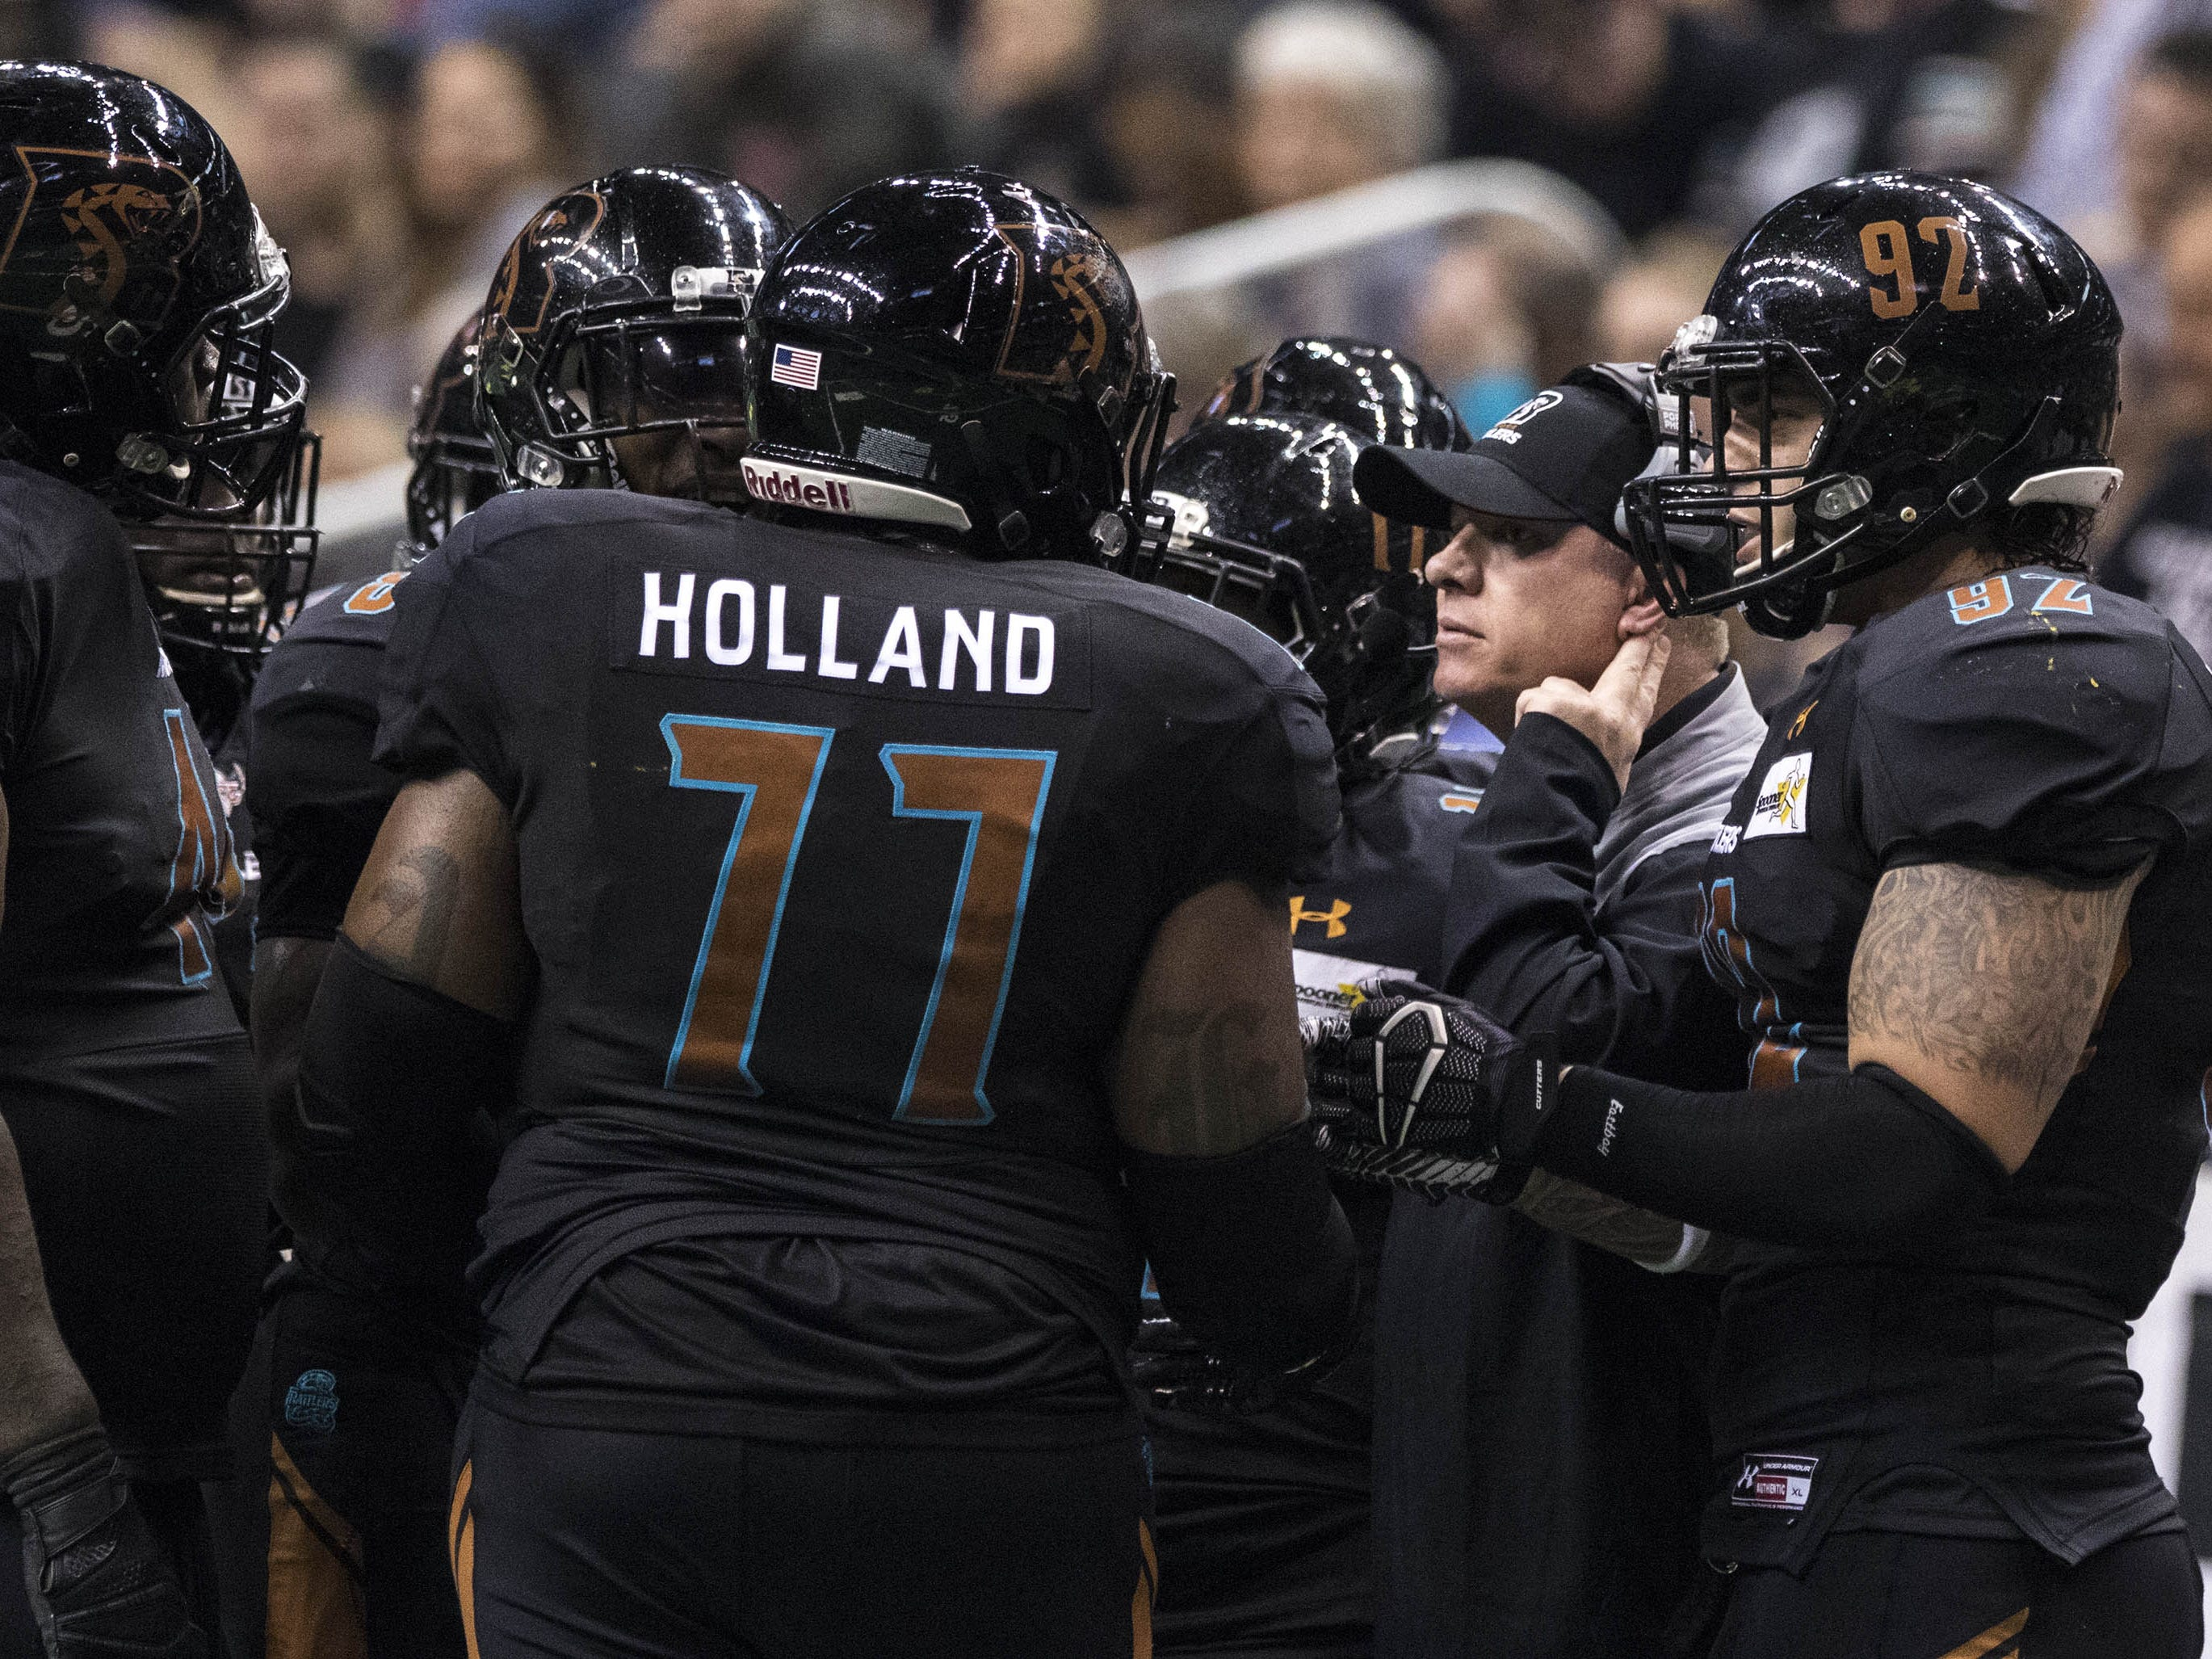 Arizona Rattlers' head coach Kevin Guy talks to his team against the Cedar Rapids River Kings during the second half of their game at Talking Stick Resort Arena in Phoenix, Sunday, March 3, 2019.